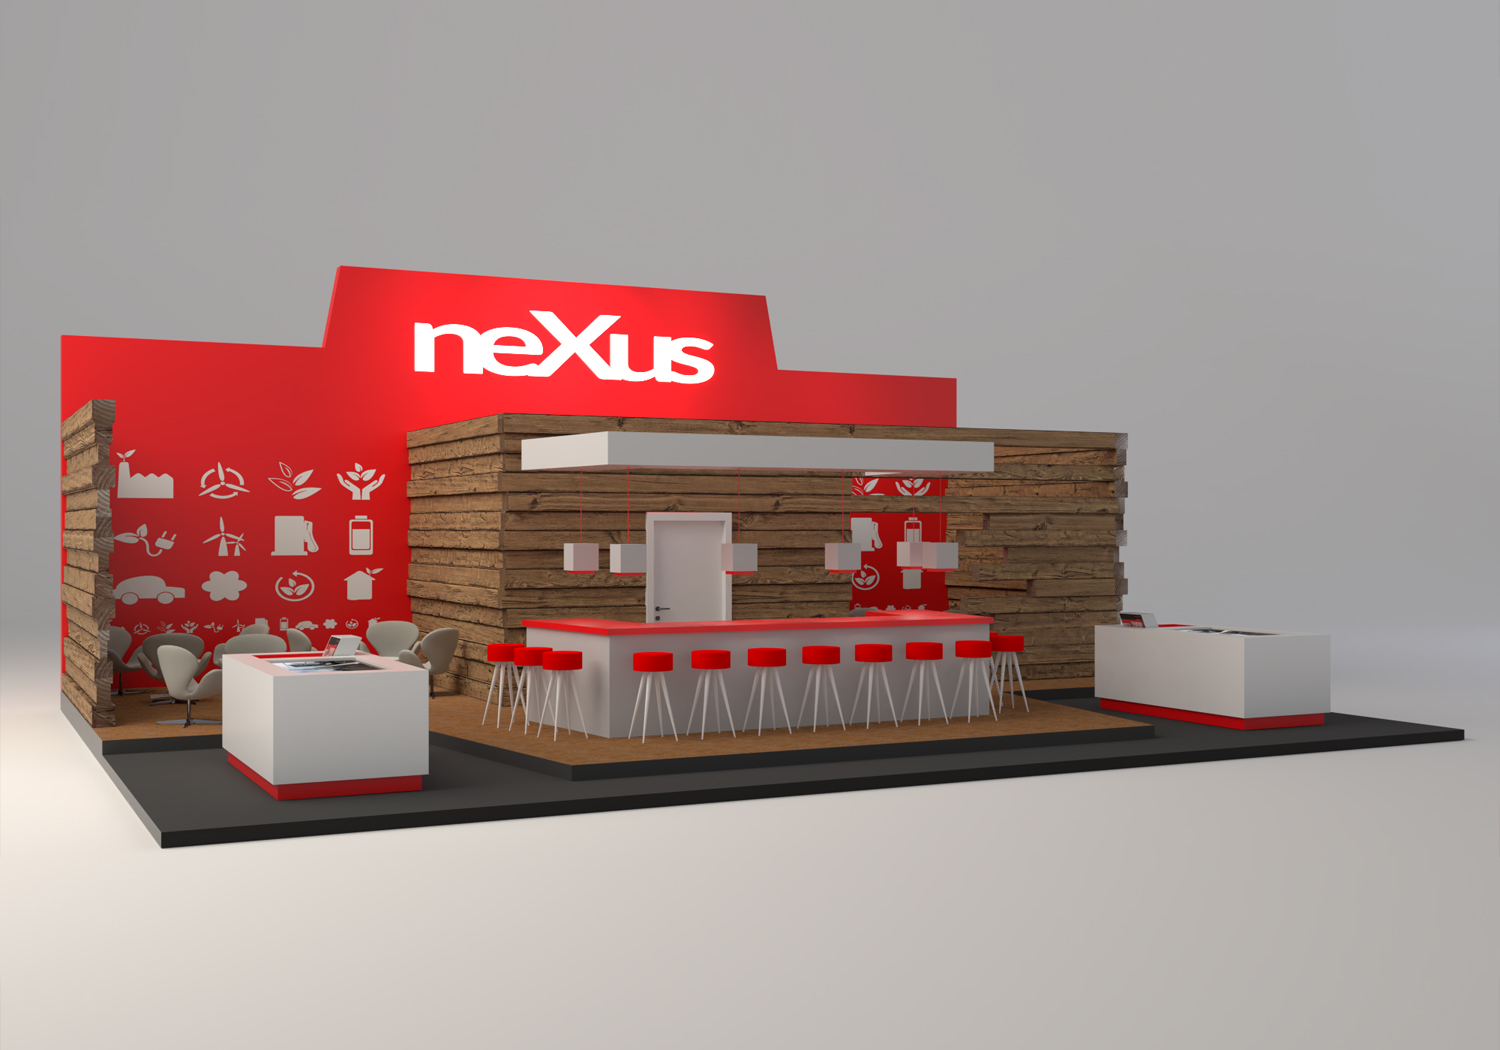 Nexus / Mobile World Congress Barcelona